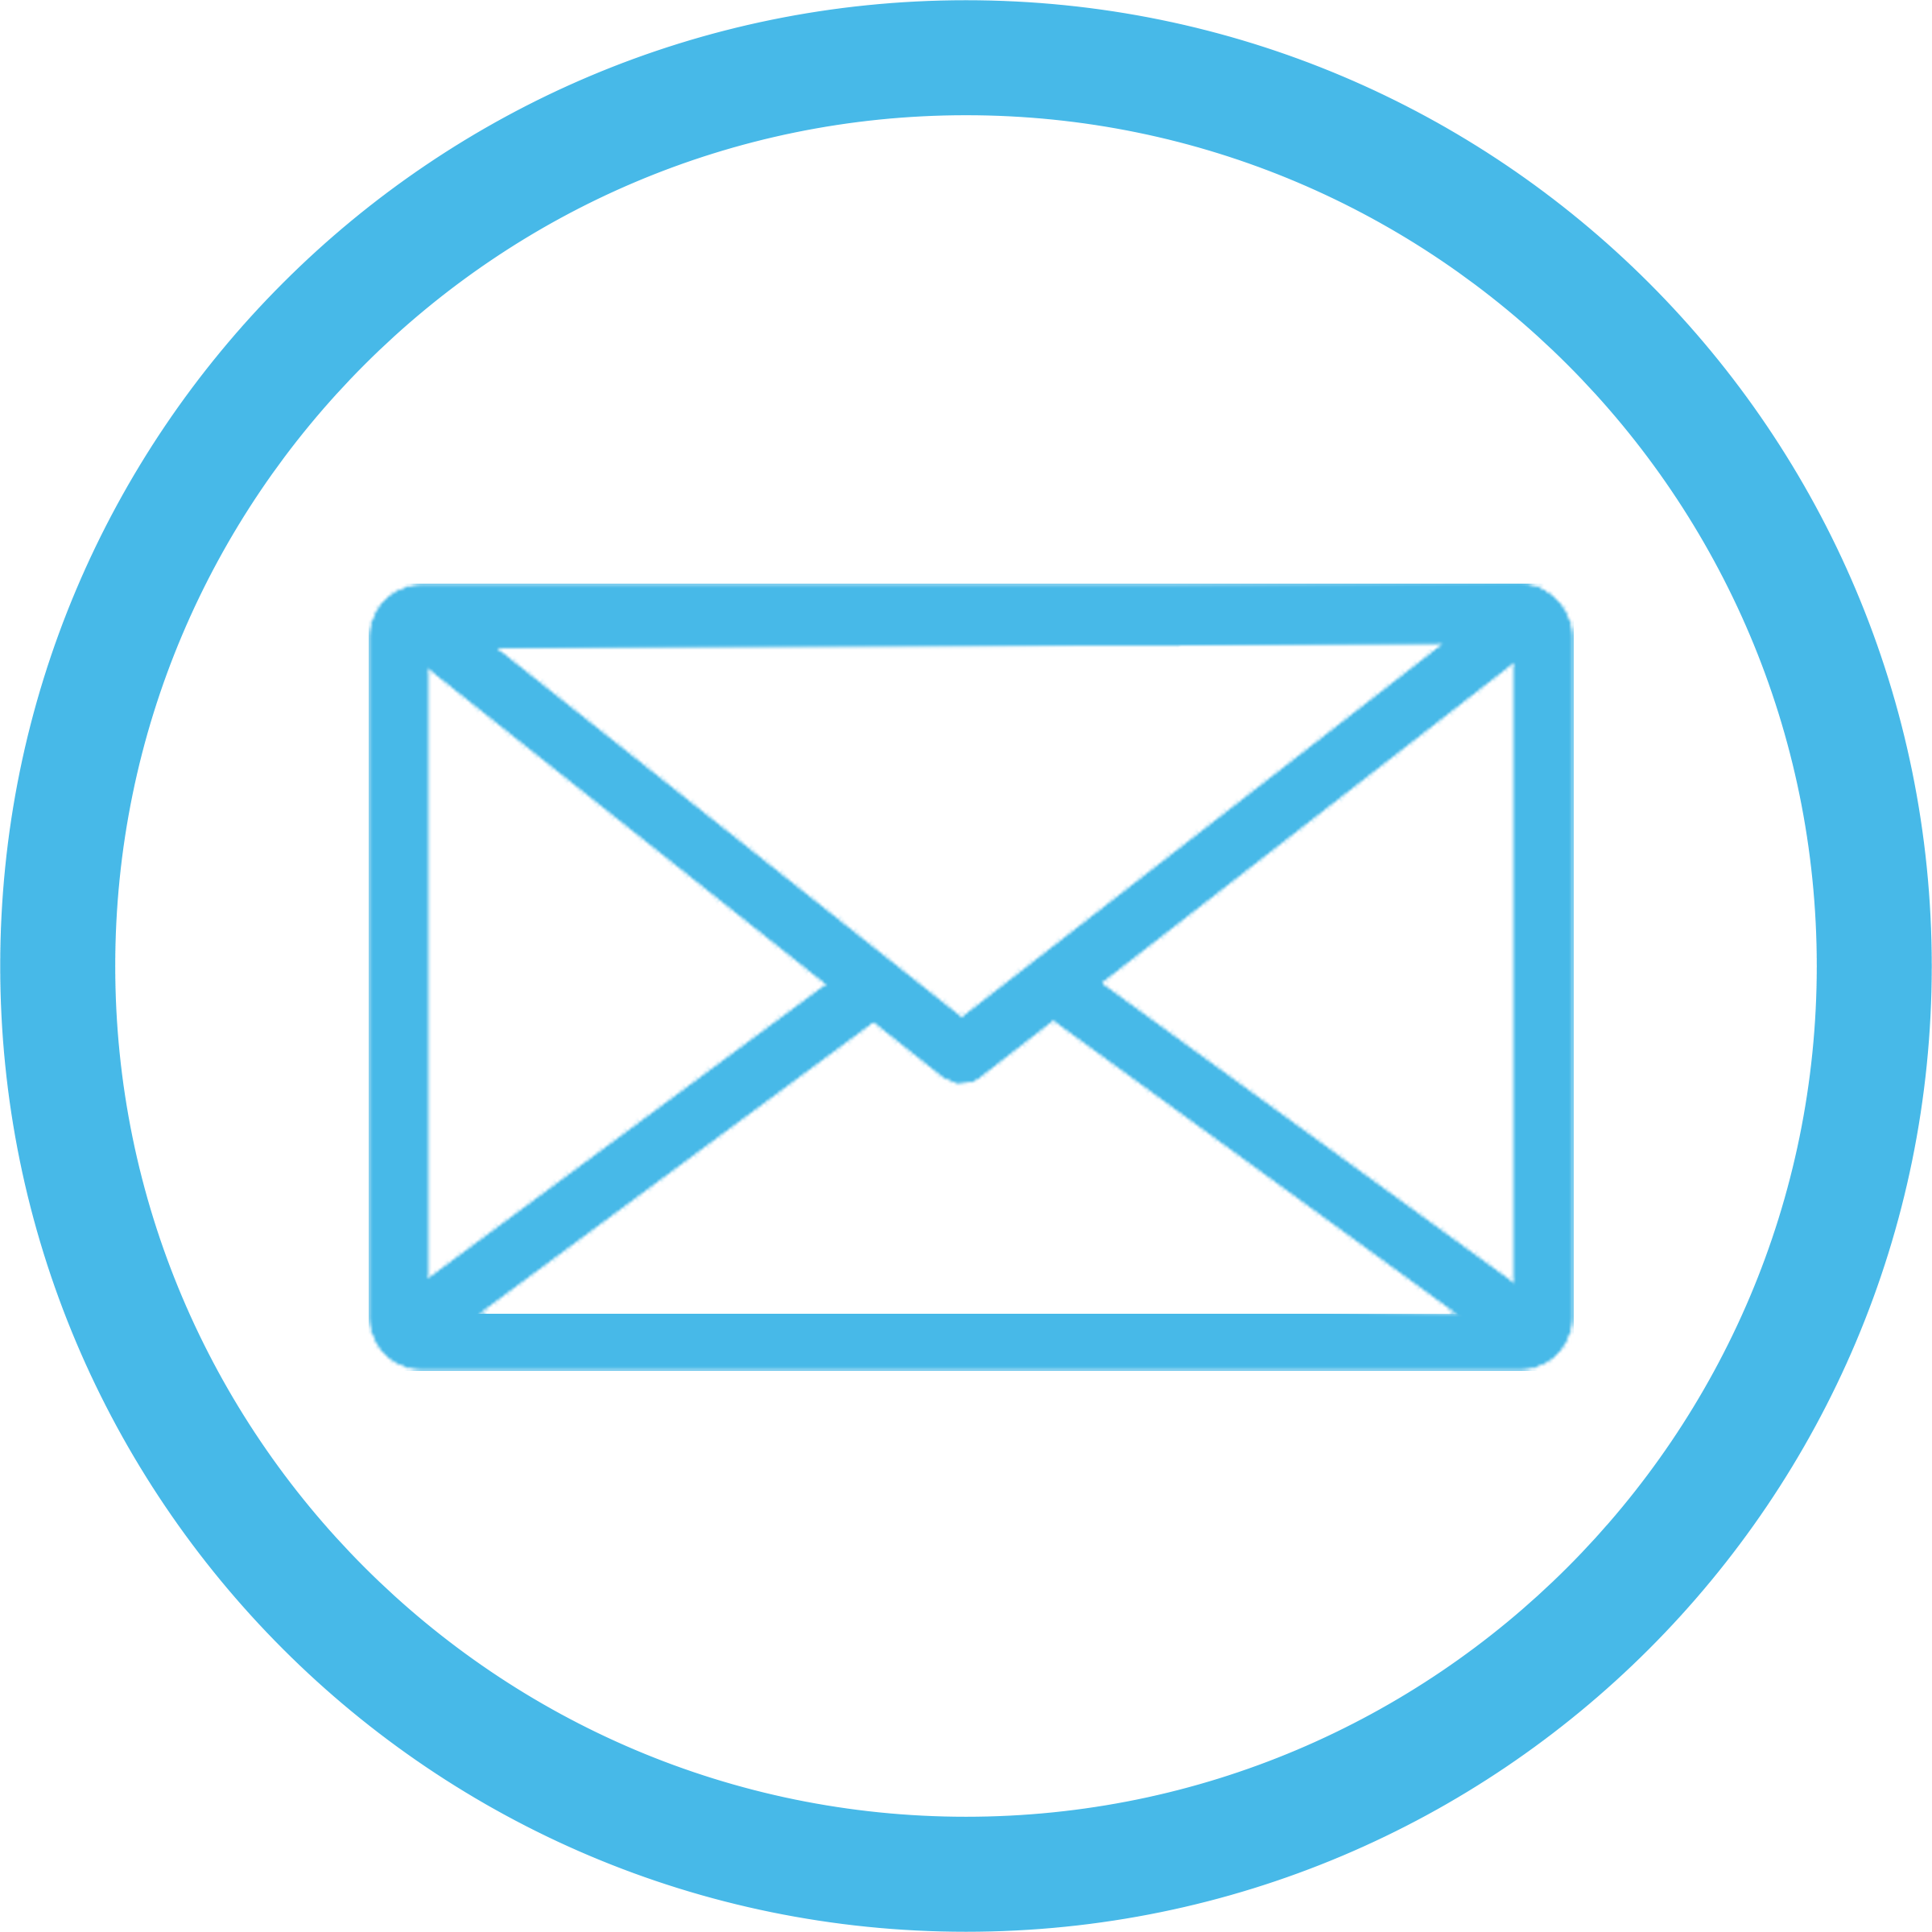 Email logo png. Download vectors free icon